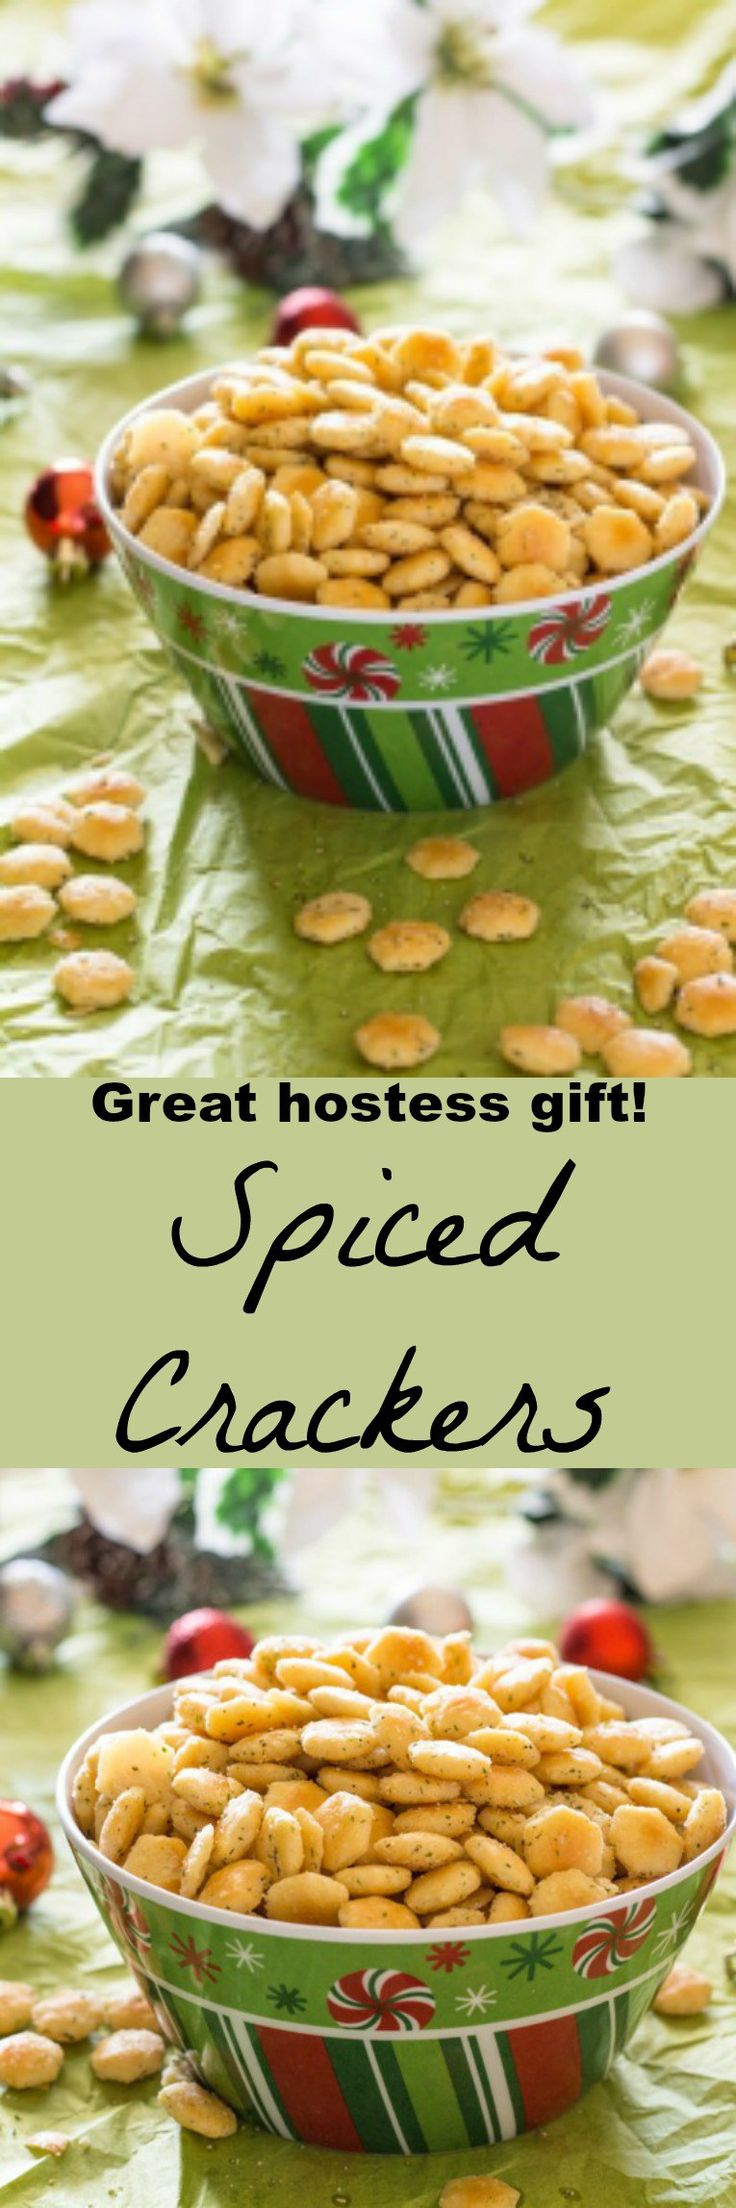 Toasty crackers with ranch dressing and other spices. Perfect for holiday gift giving, tailgating, Super Bowl Parties, and snacking. Try them with tomato soup.